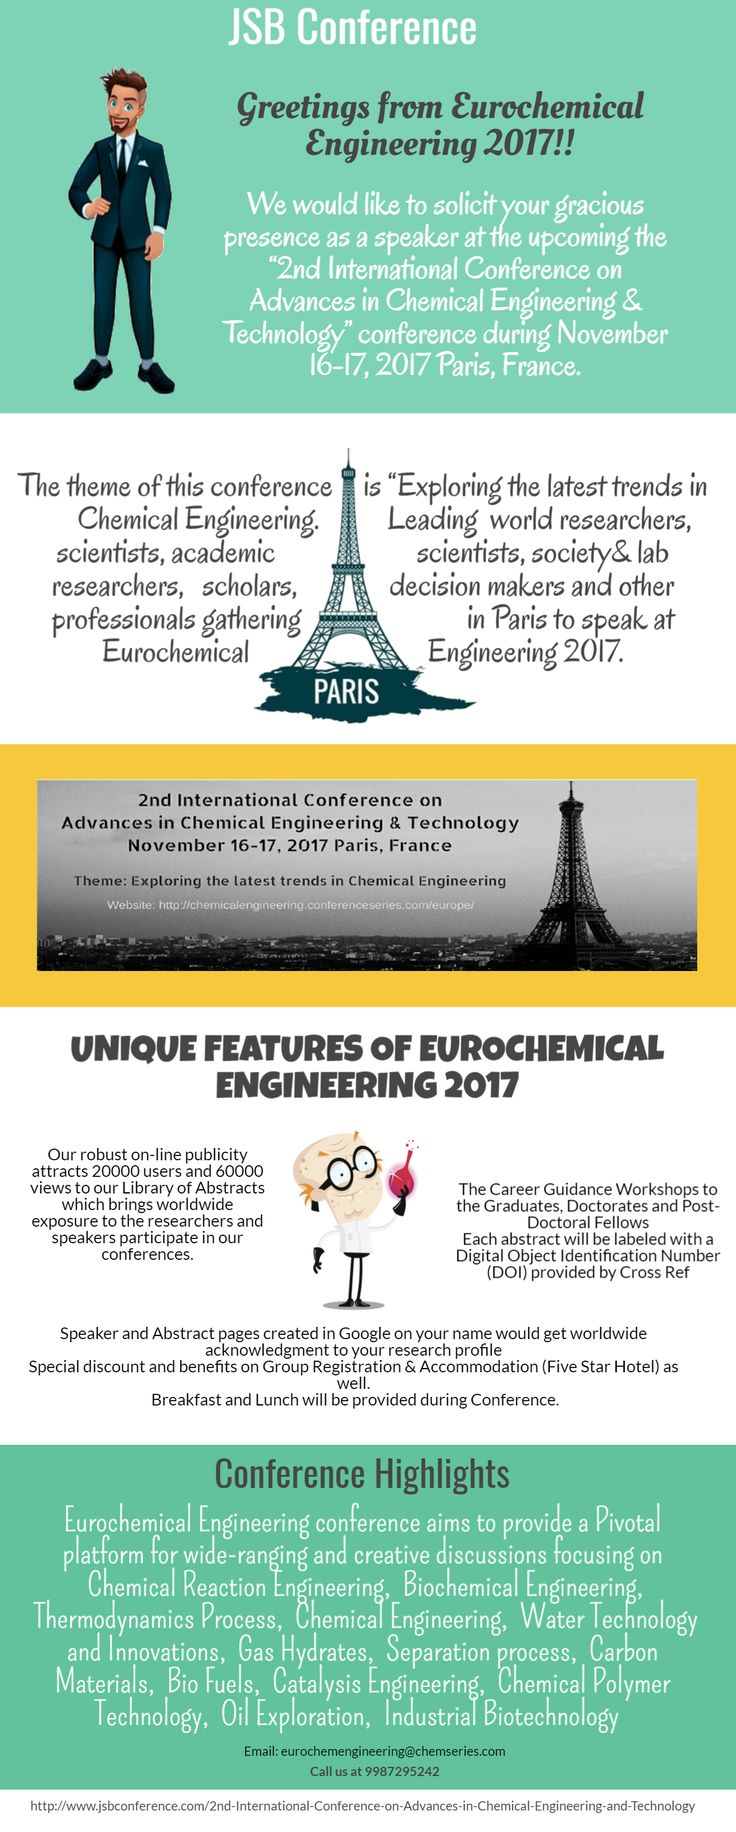 """JSB Conference is inviting you to attend 2nd International Conference on Chemical Engineering and Technology, 2017.  Theme of the Chemical engineering 2017 conference is """"Exploring the latest trends in Chemical Engineering"""" with an objective to encourage young minds and their research abilities by providing an opportunity to meet the experts in the field of Chemical Engineering."""